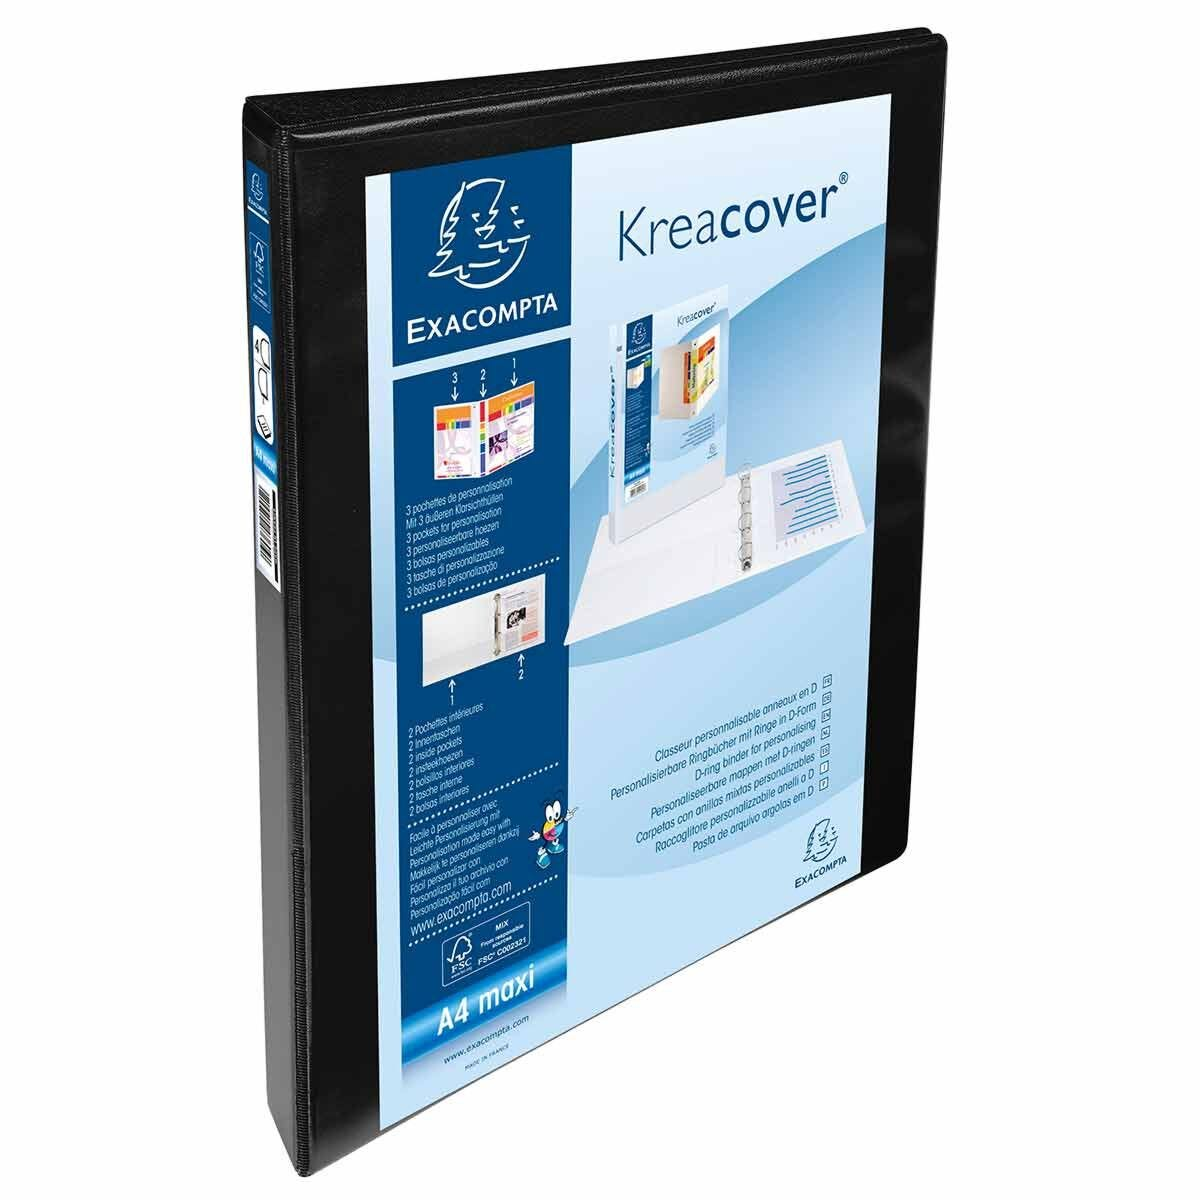 Exacompta Kreacover Personal Ring Binder A4 Plus 4 Rings 15mm 3 Pockets Pack of 10 Black